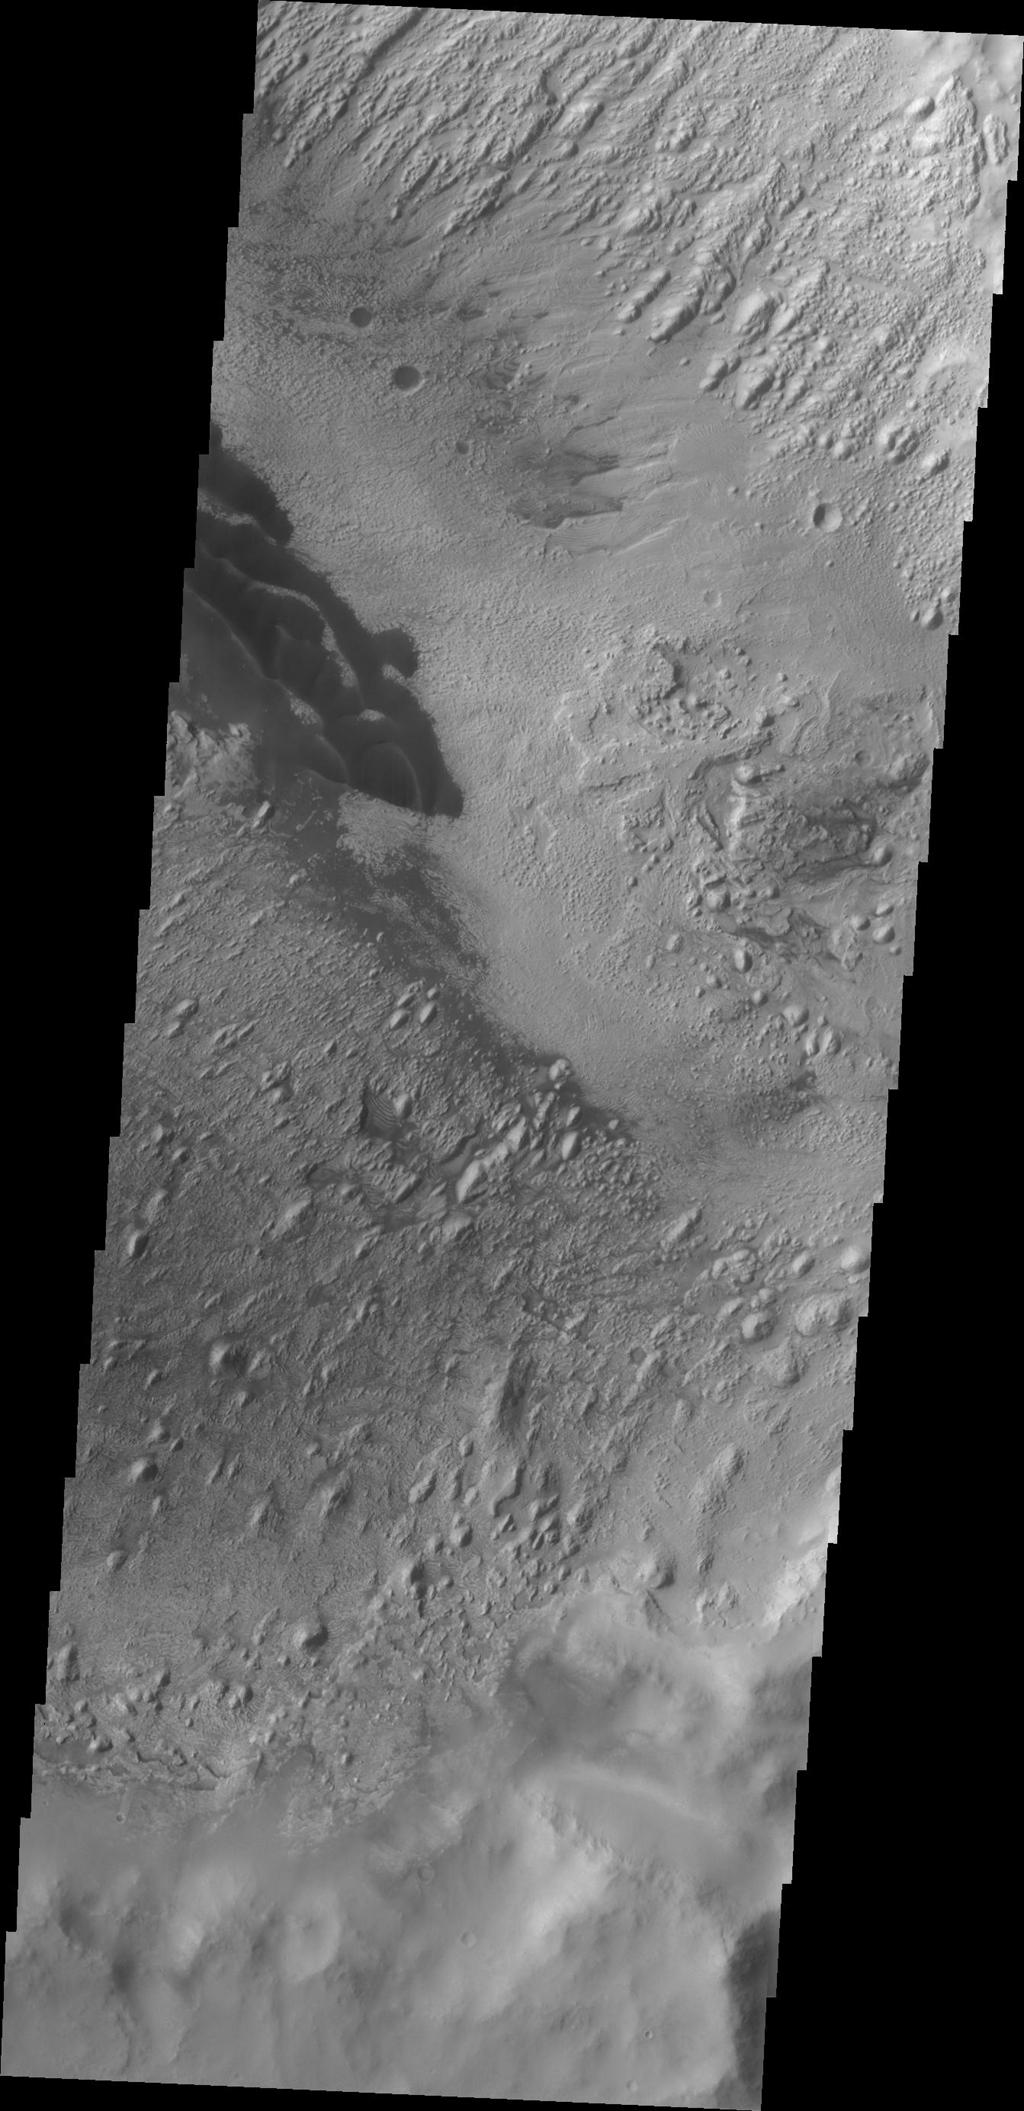 These dark dunes captured by NASA's 2001 Mars Odyssey are located on the floor of Danielson Crater in Meridiani Planum.